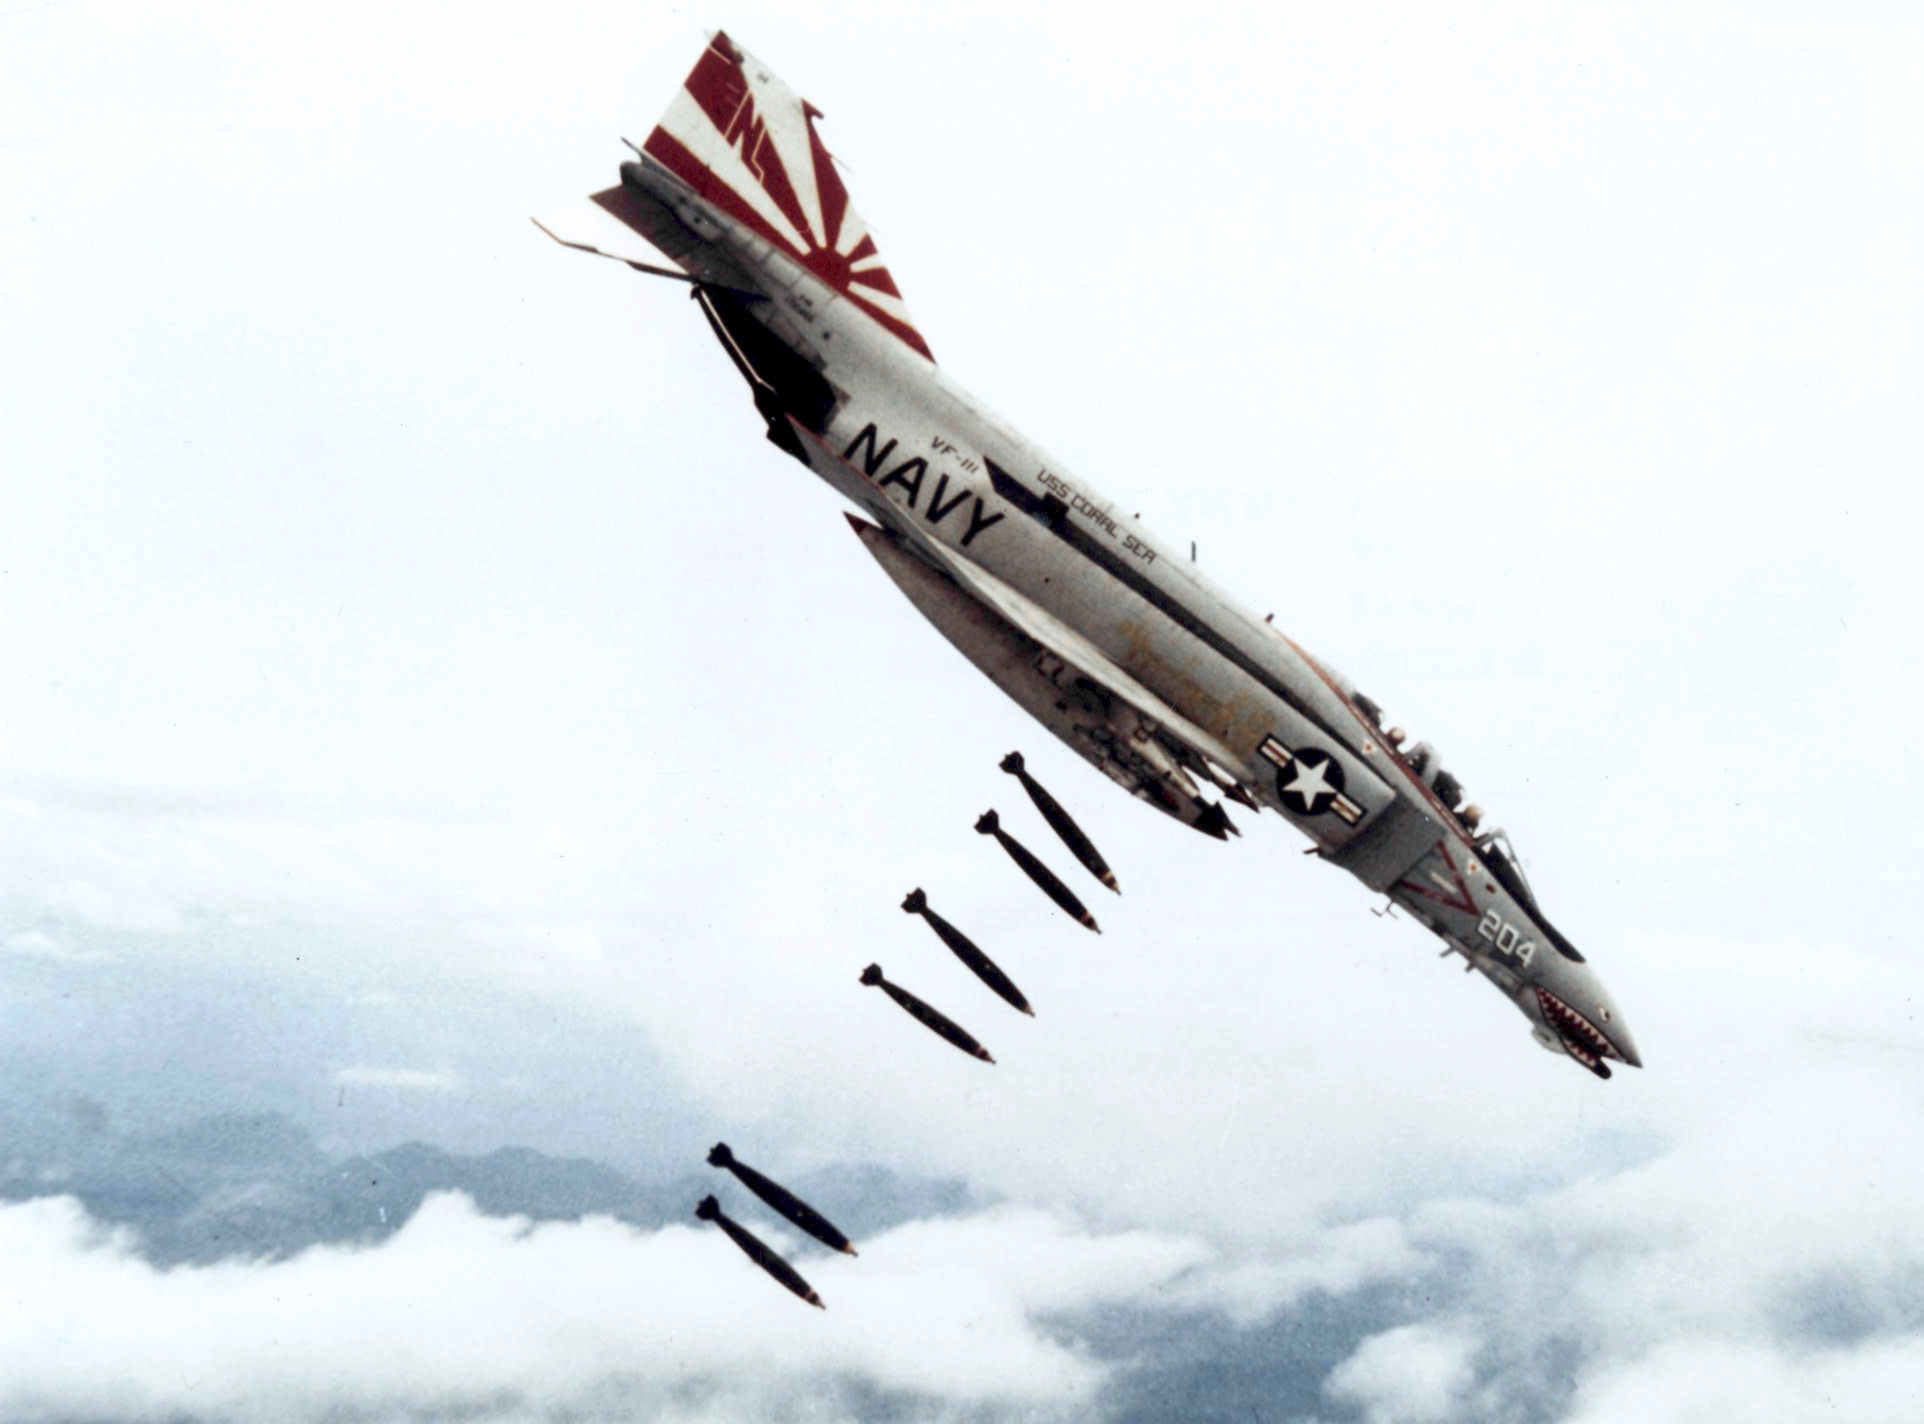 McDonnell Douglas F-4 Phantom II - Wikipedia, the free encyclopedia